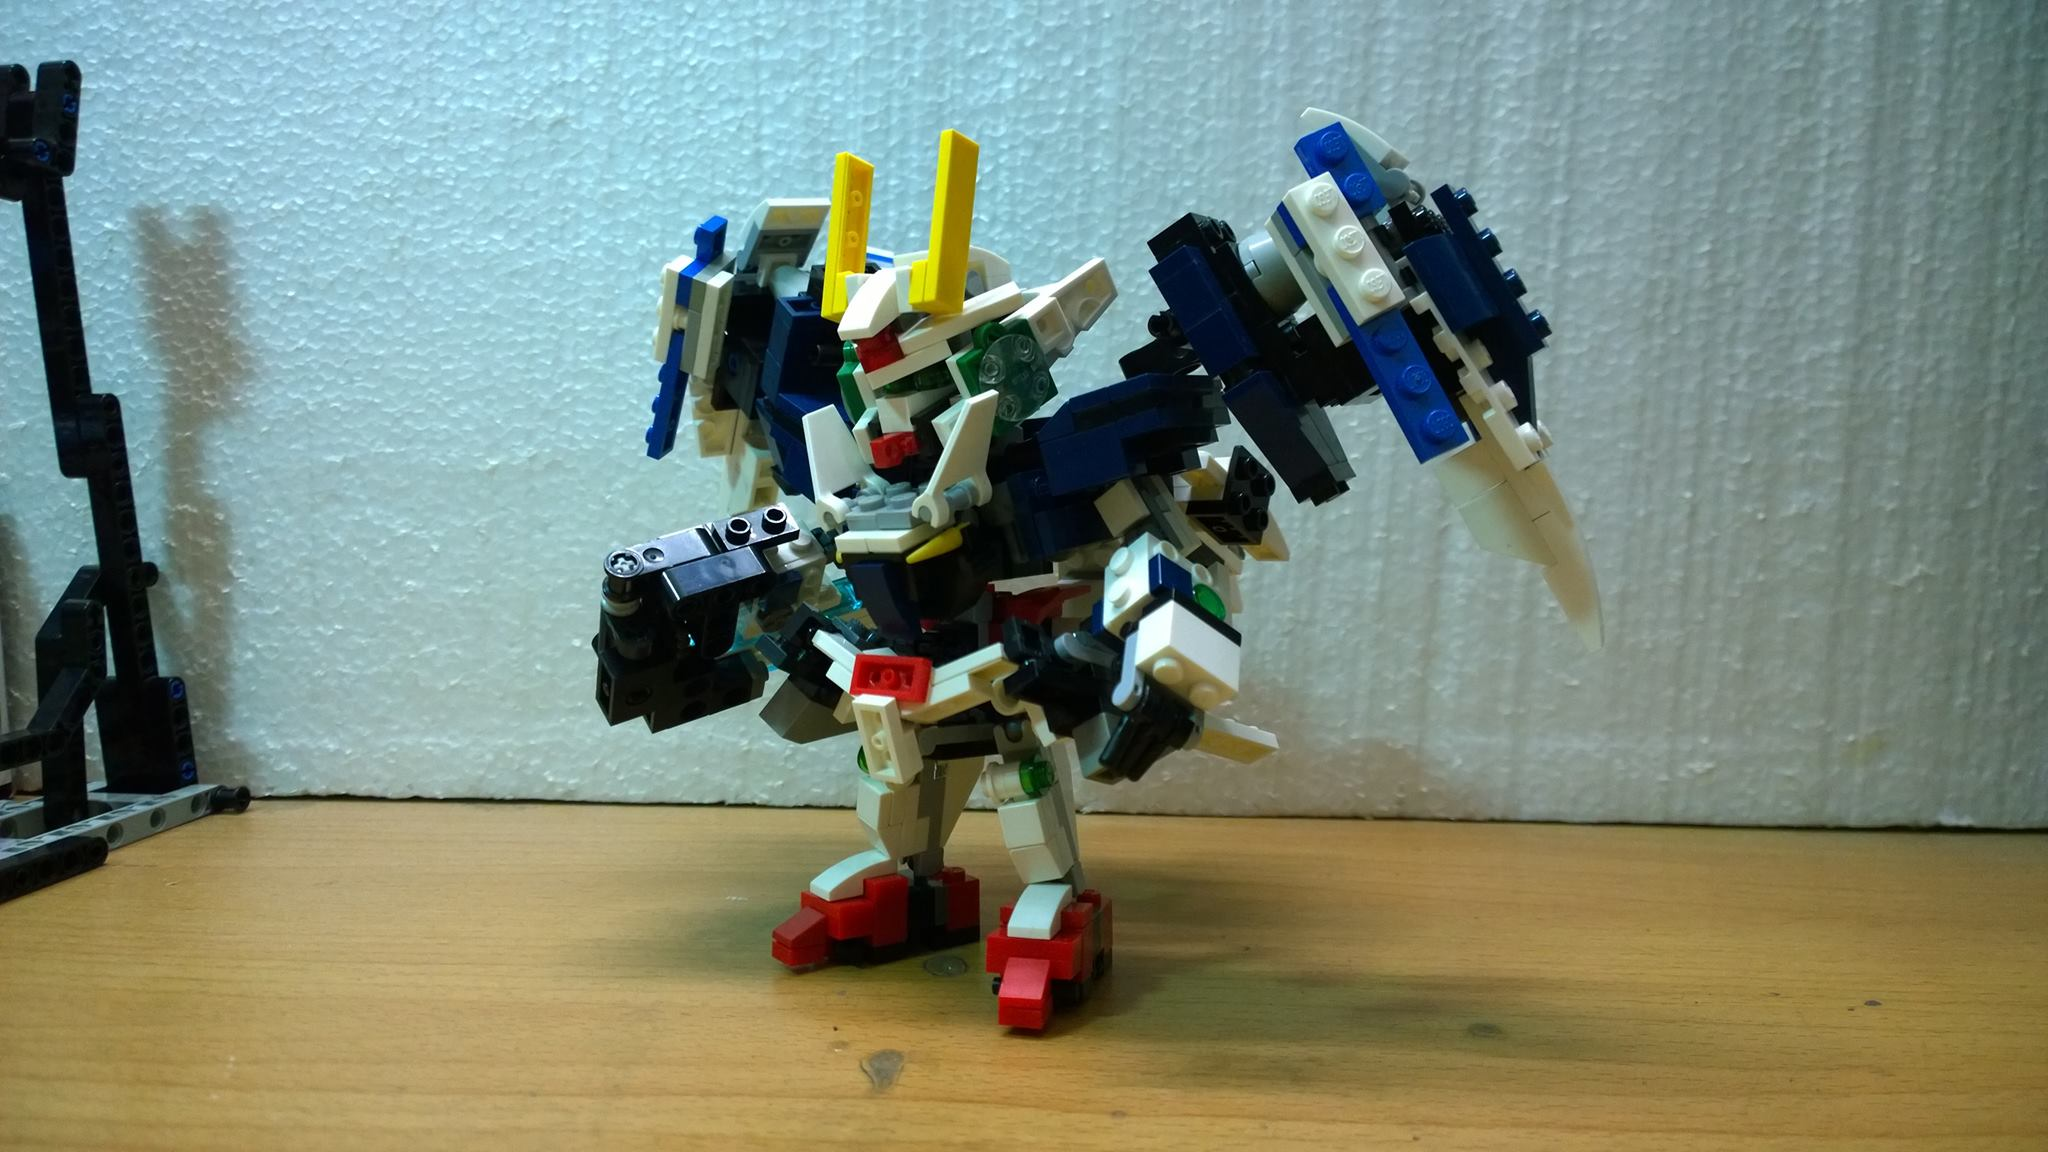 LEGO SD 00 Gundam GN-0000 by demon14082000